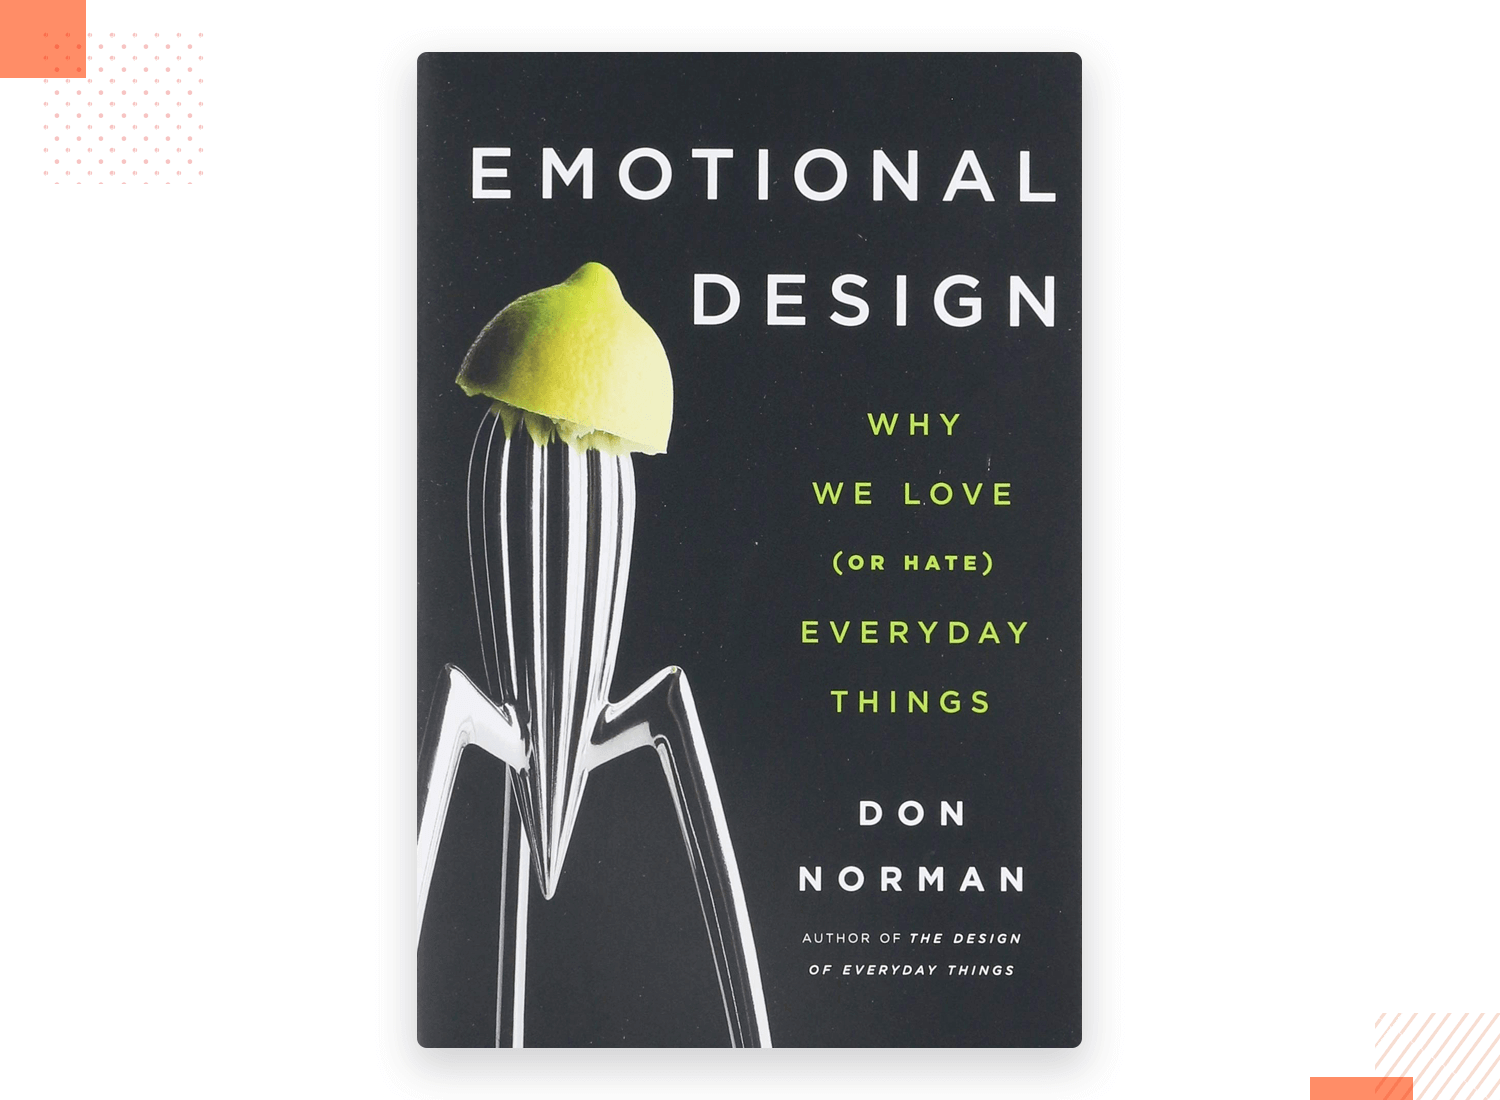 emaotional design as ux book by don norman